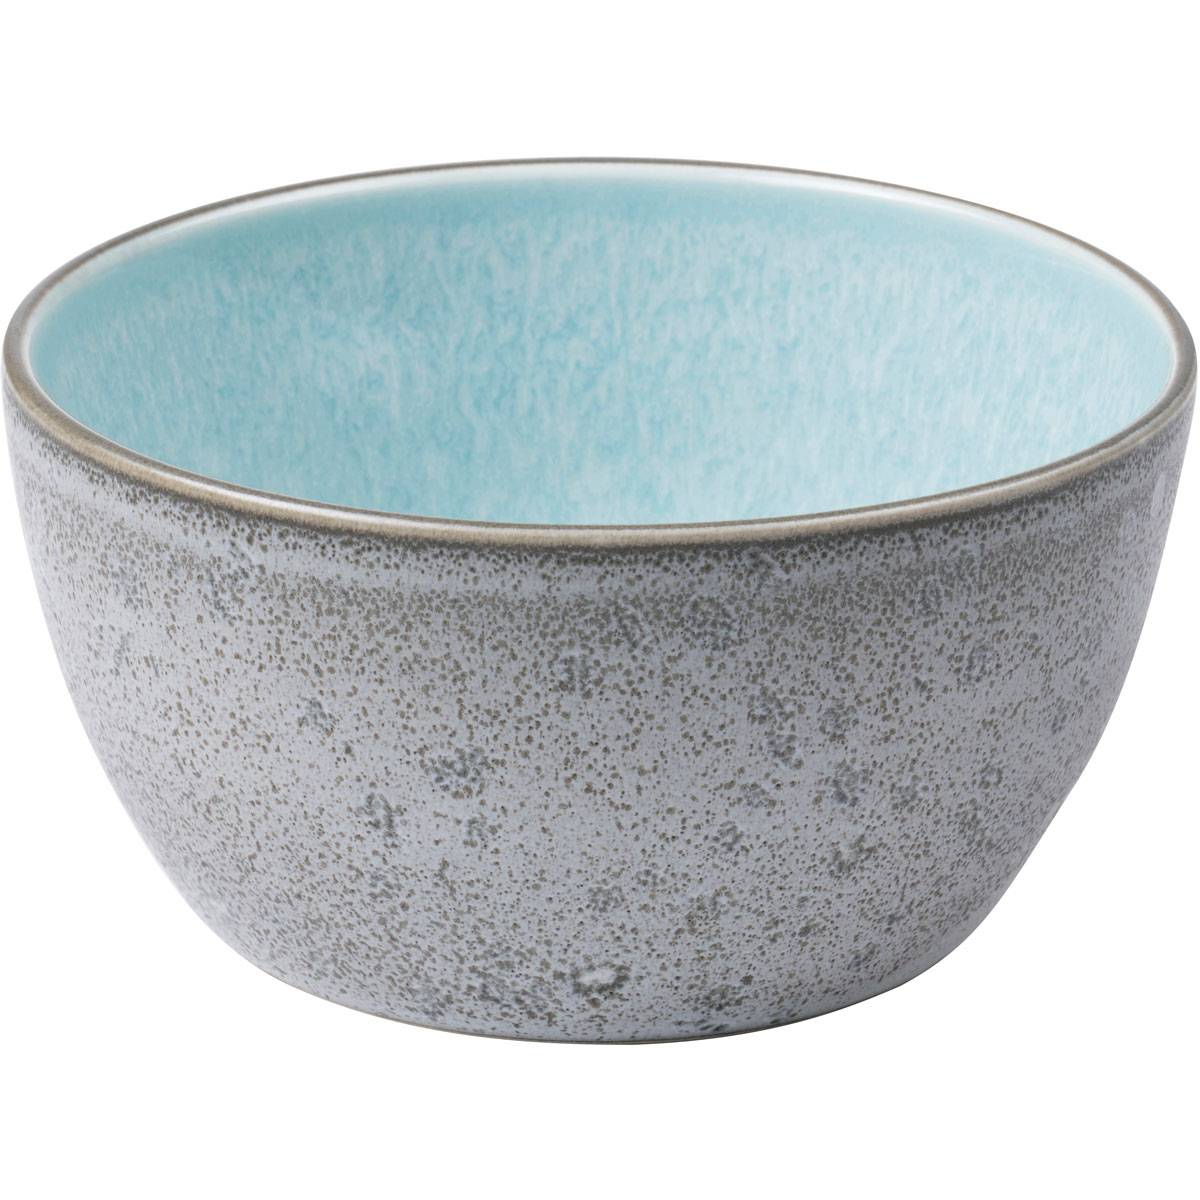 Bitz Bitz Bowl 14 cm, Grey/Light Blue